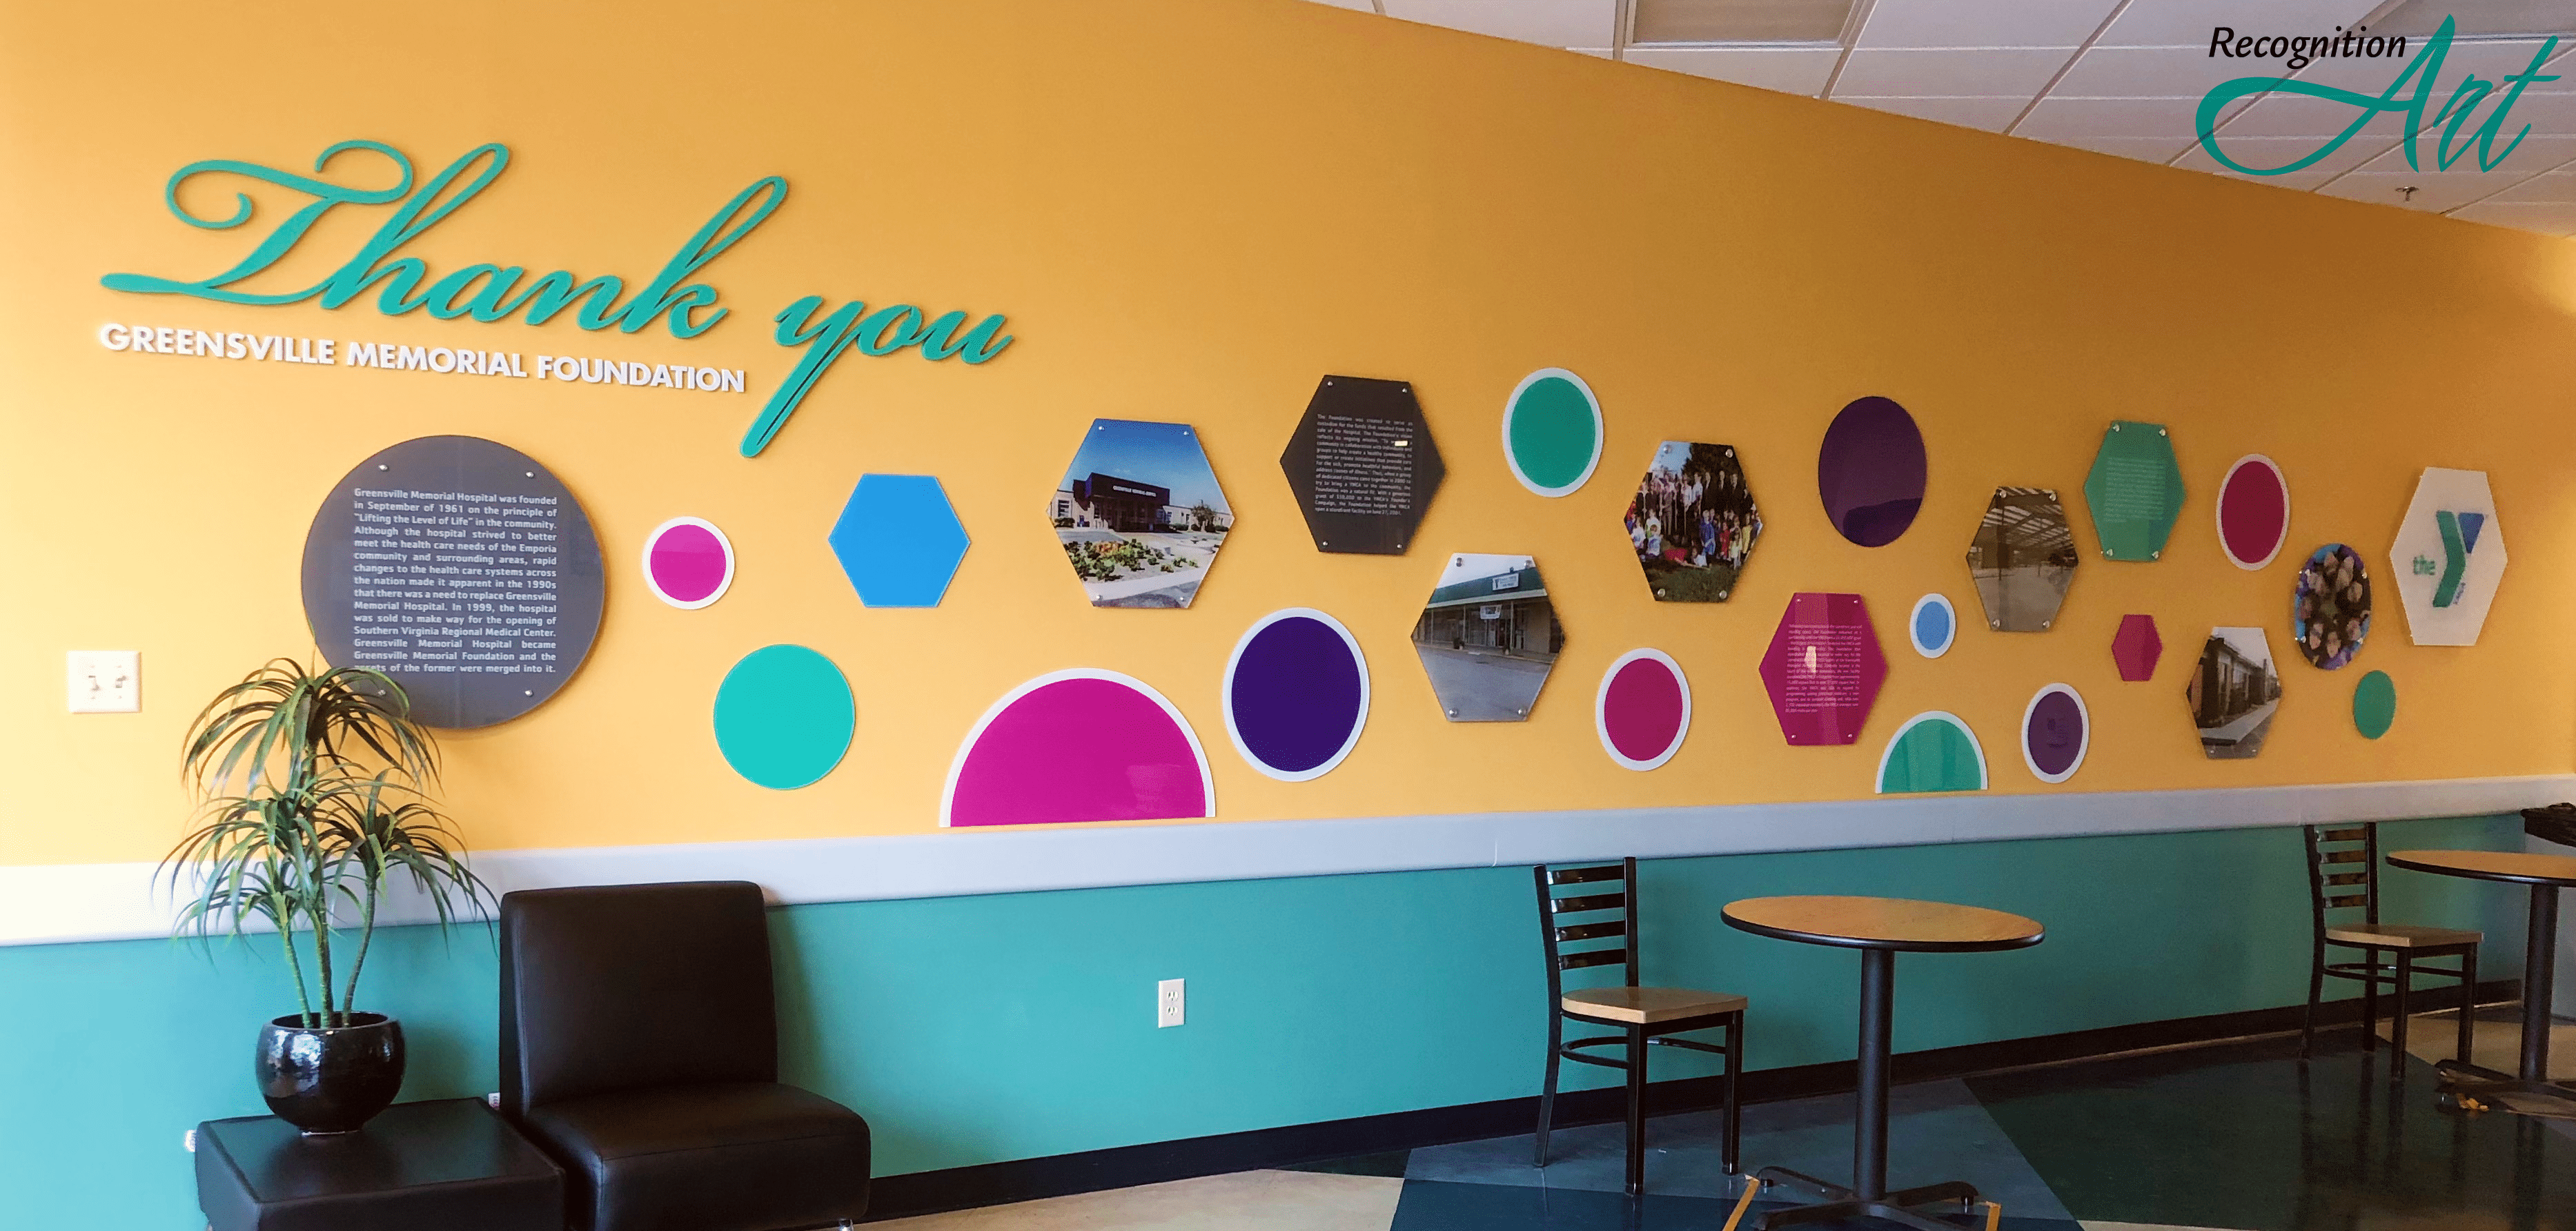 A donor wall made of pink, blue, green and purple acrylic circles and hexagons describing the journey of the Emporia-Greensville YMCA